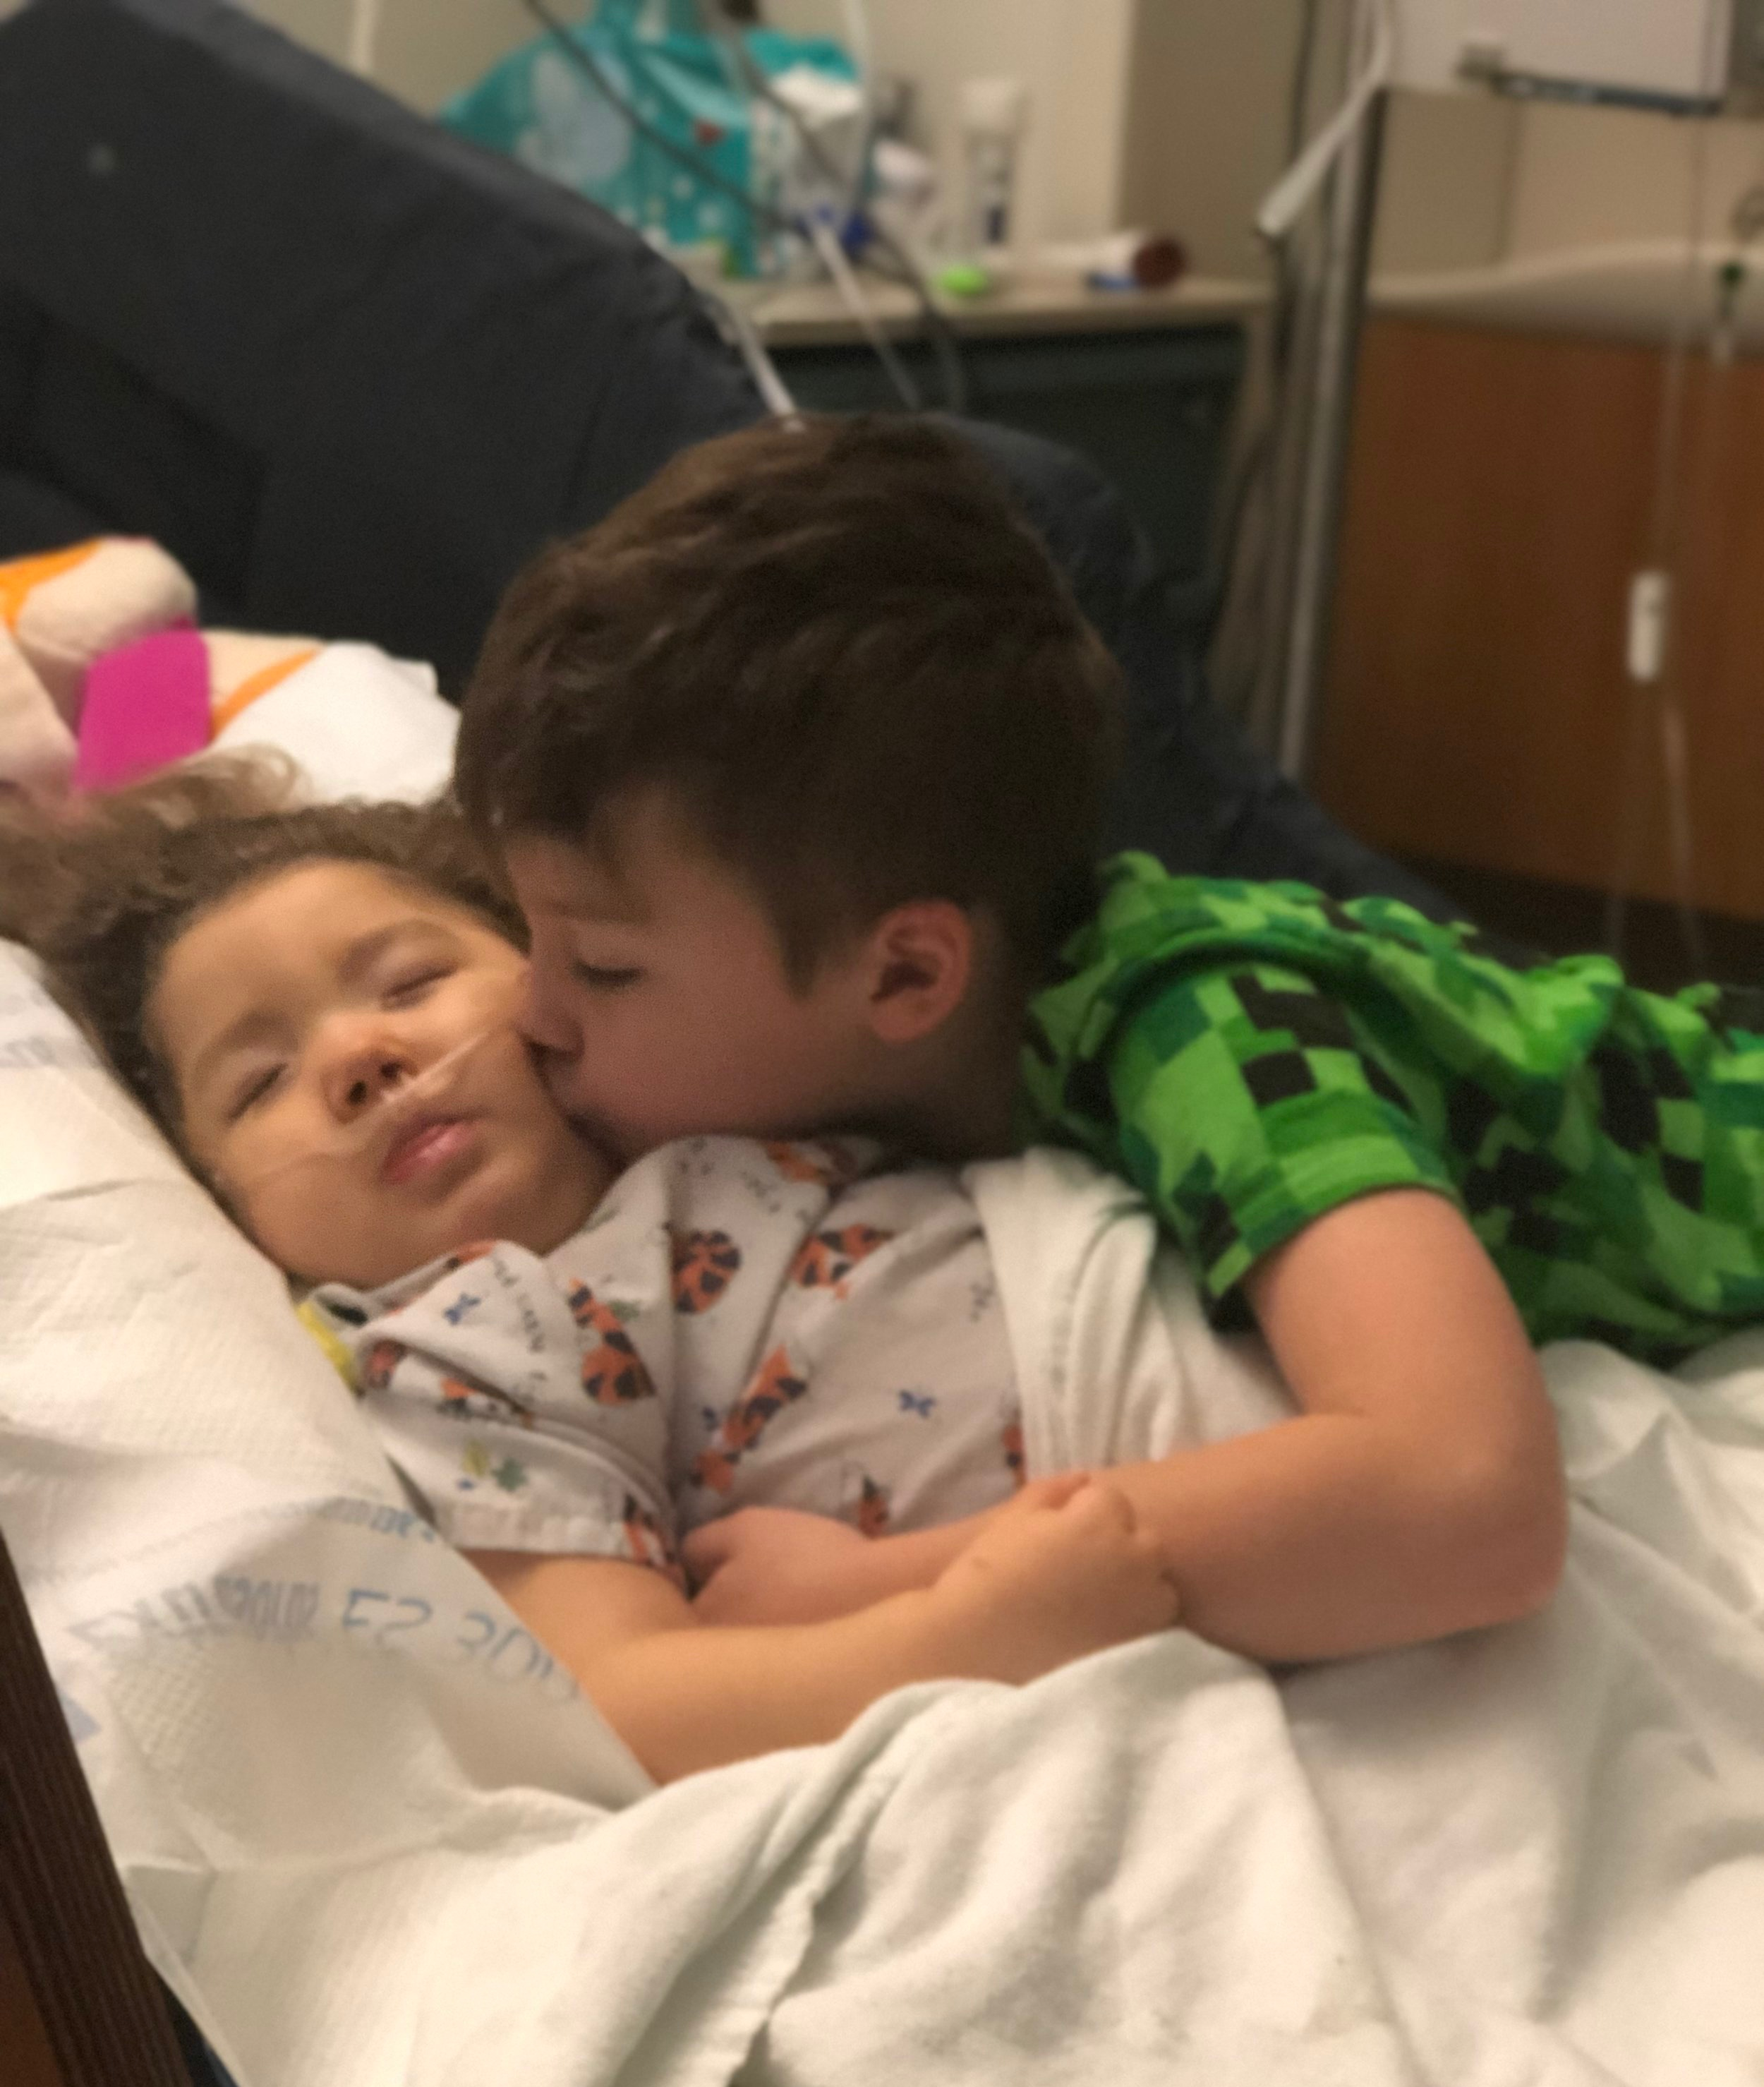 Visit from big brother at the hospital, June 2019